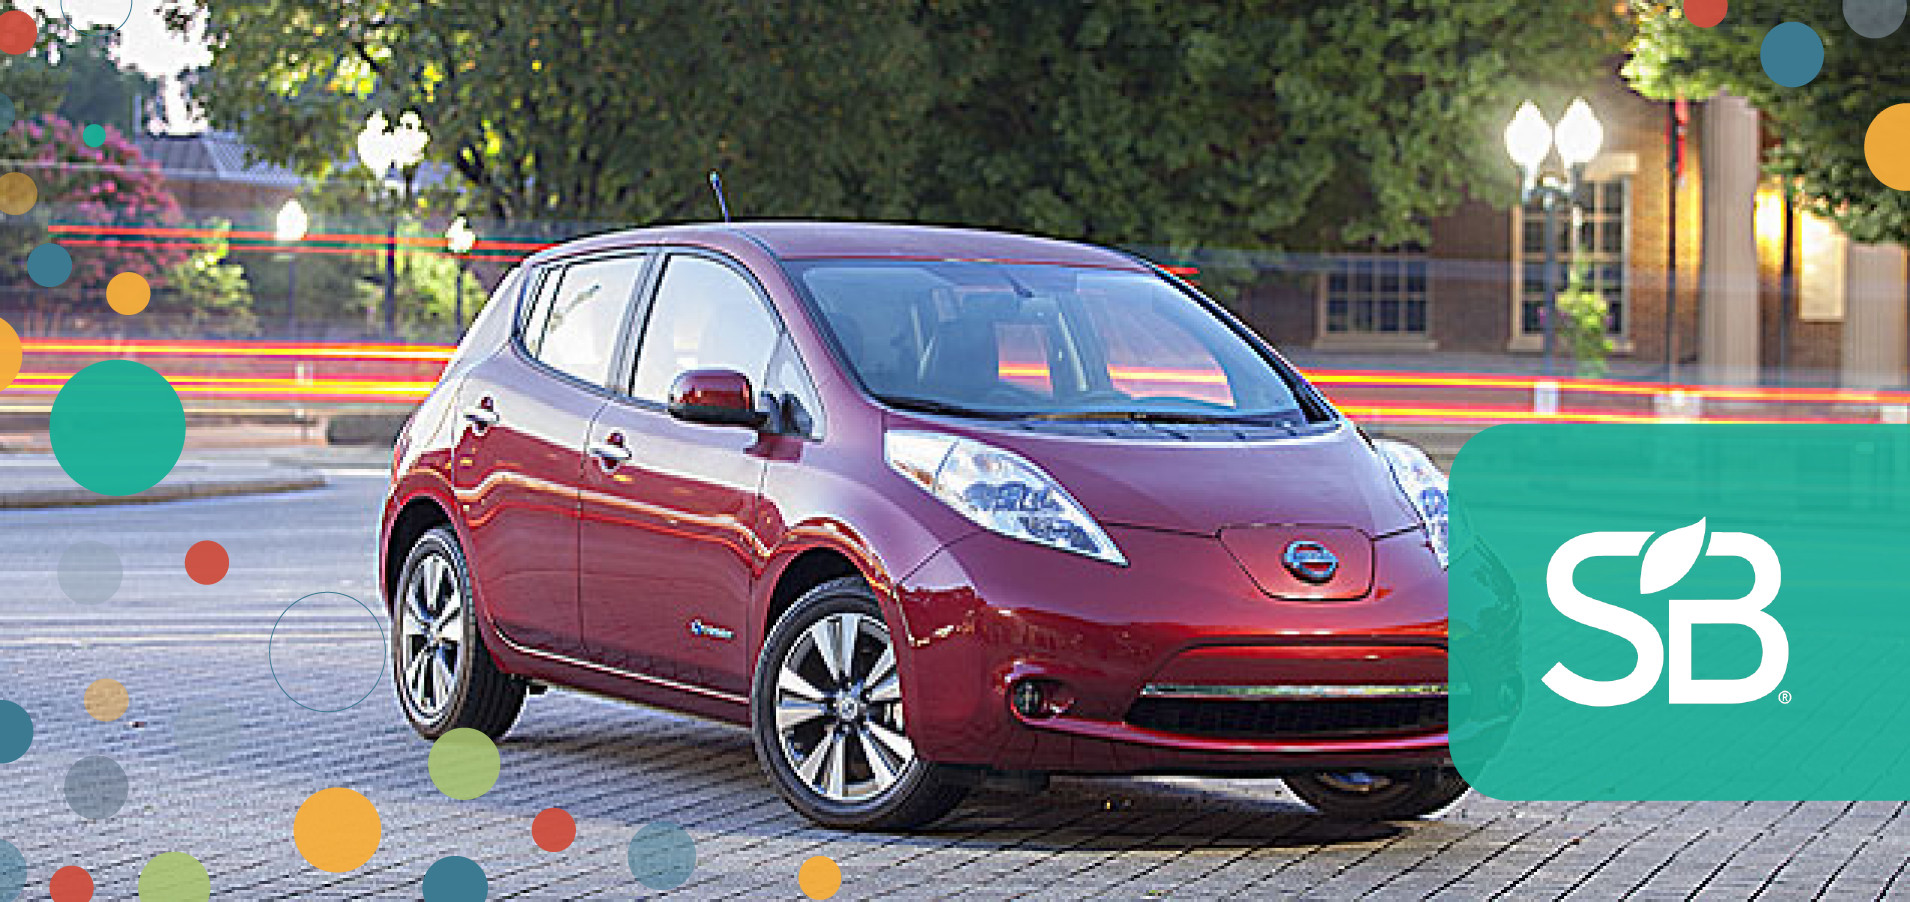 Nissan Expanding Program to Make Charging Free and 'EZ' for LEAF